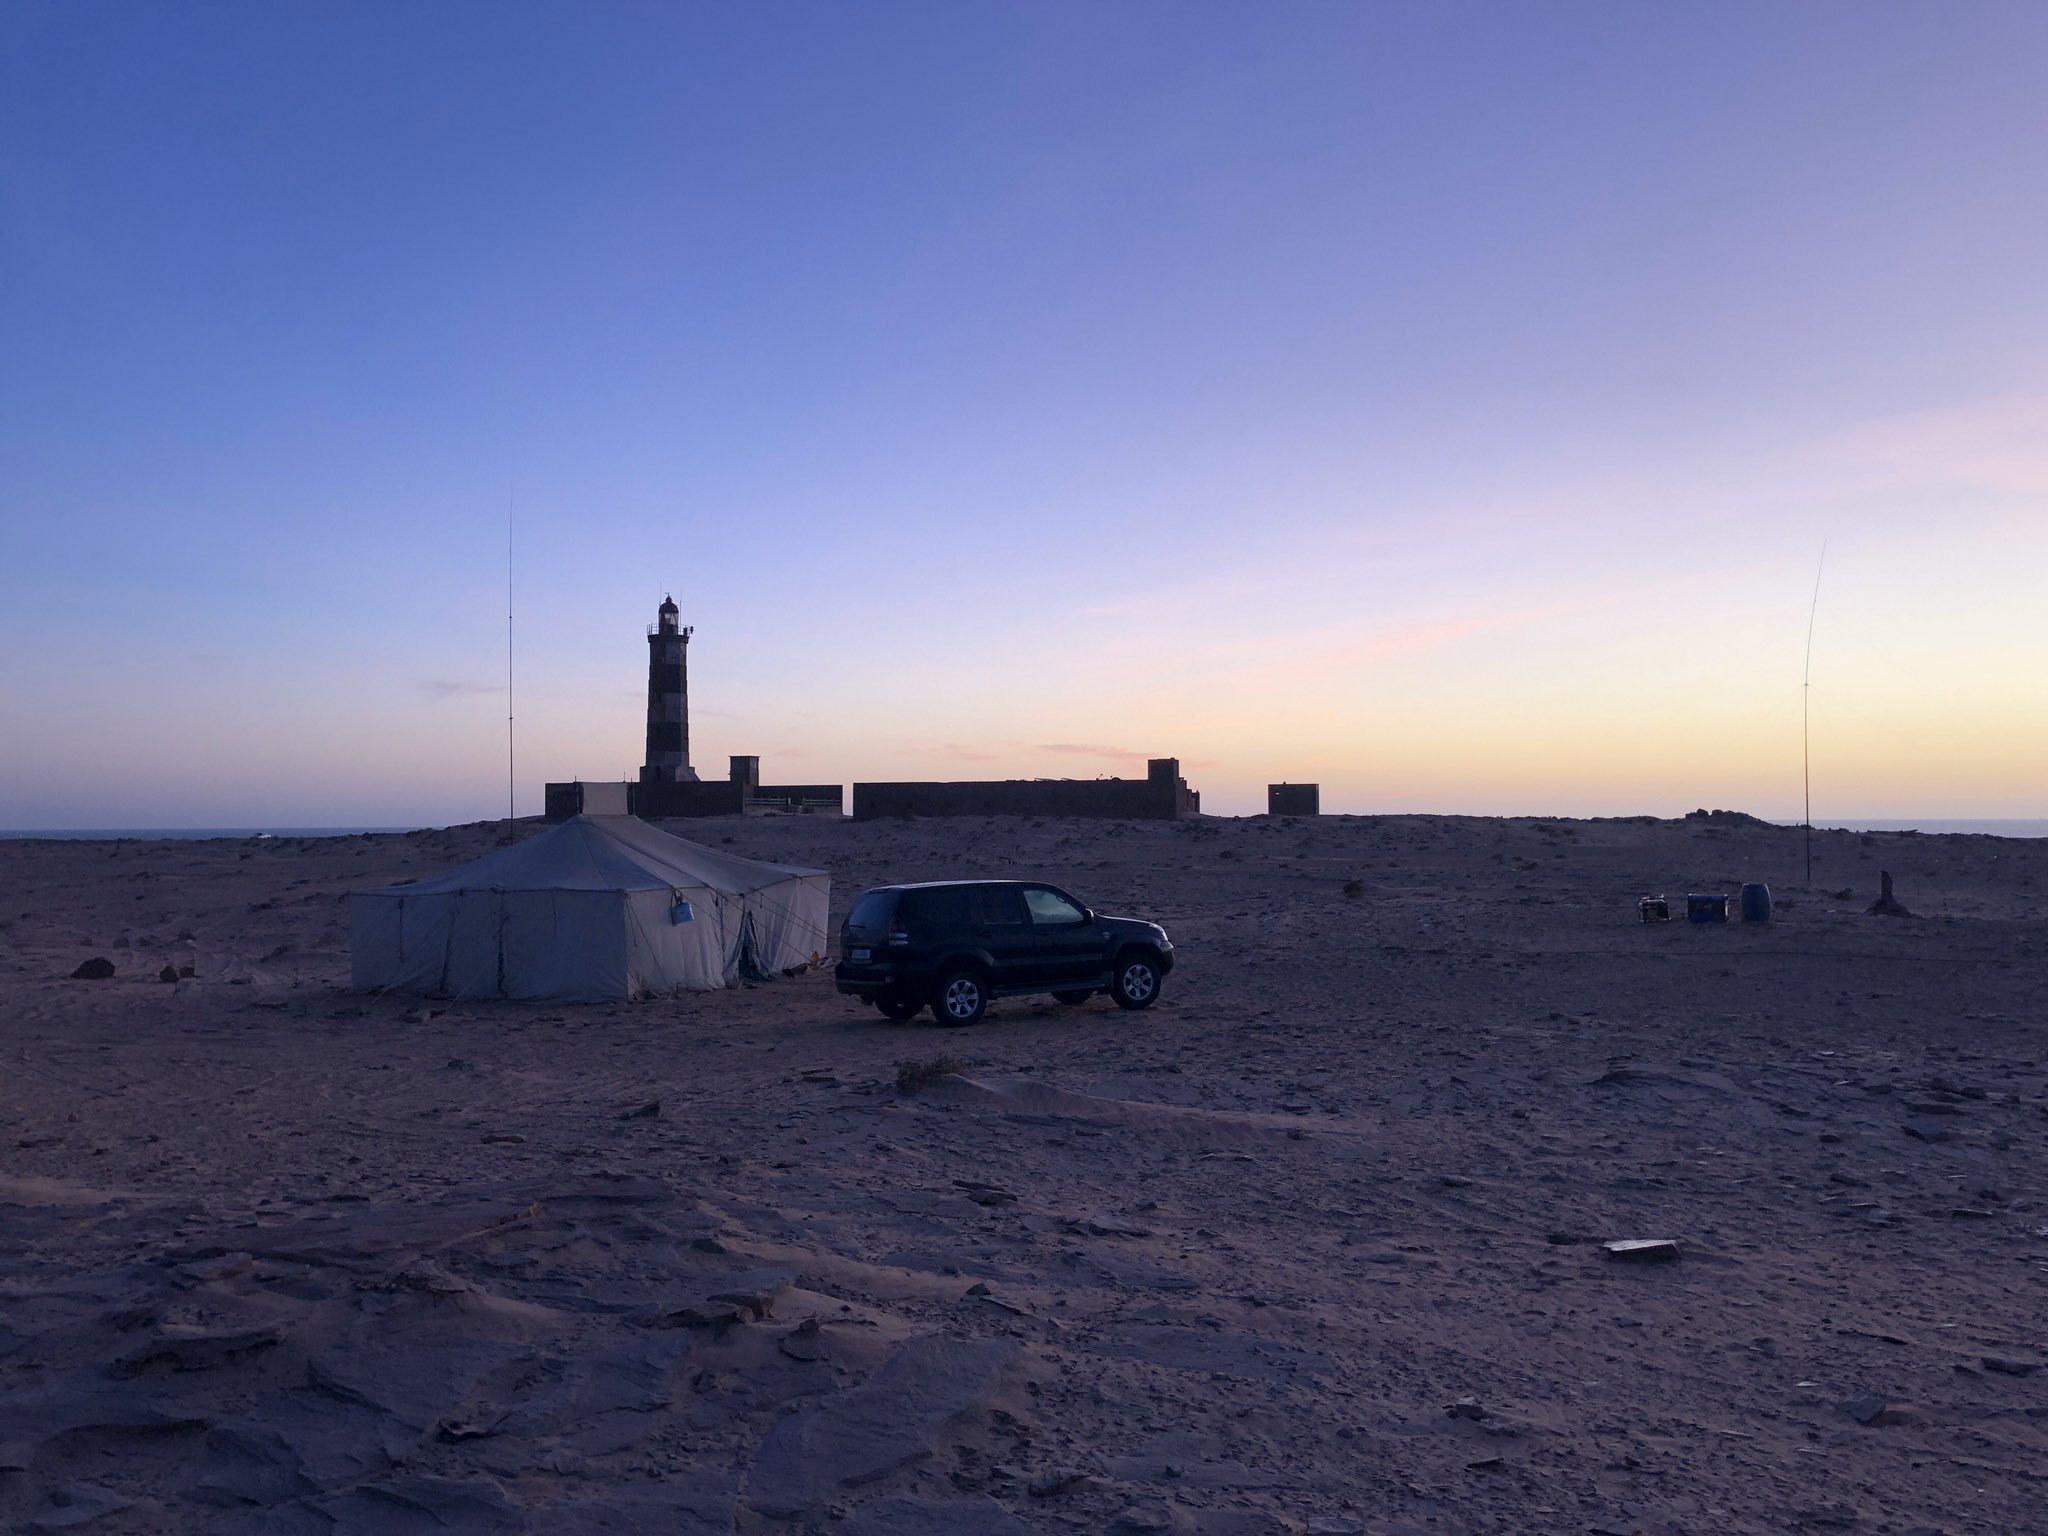 5T2KW & 5T5PA – Mauritania